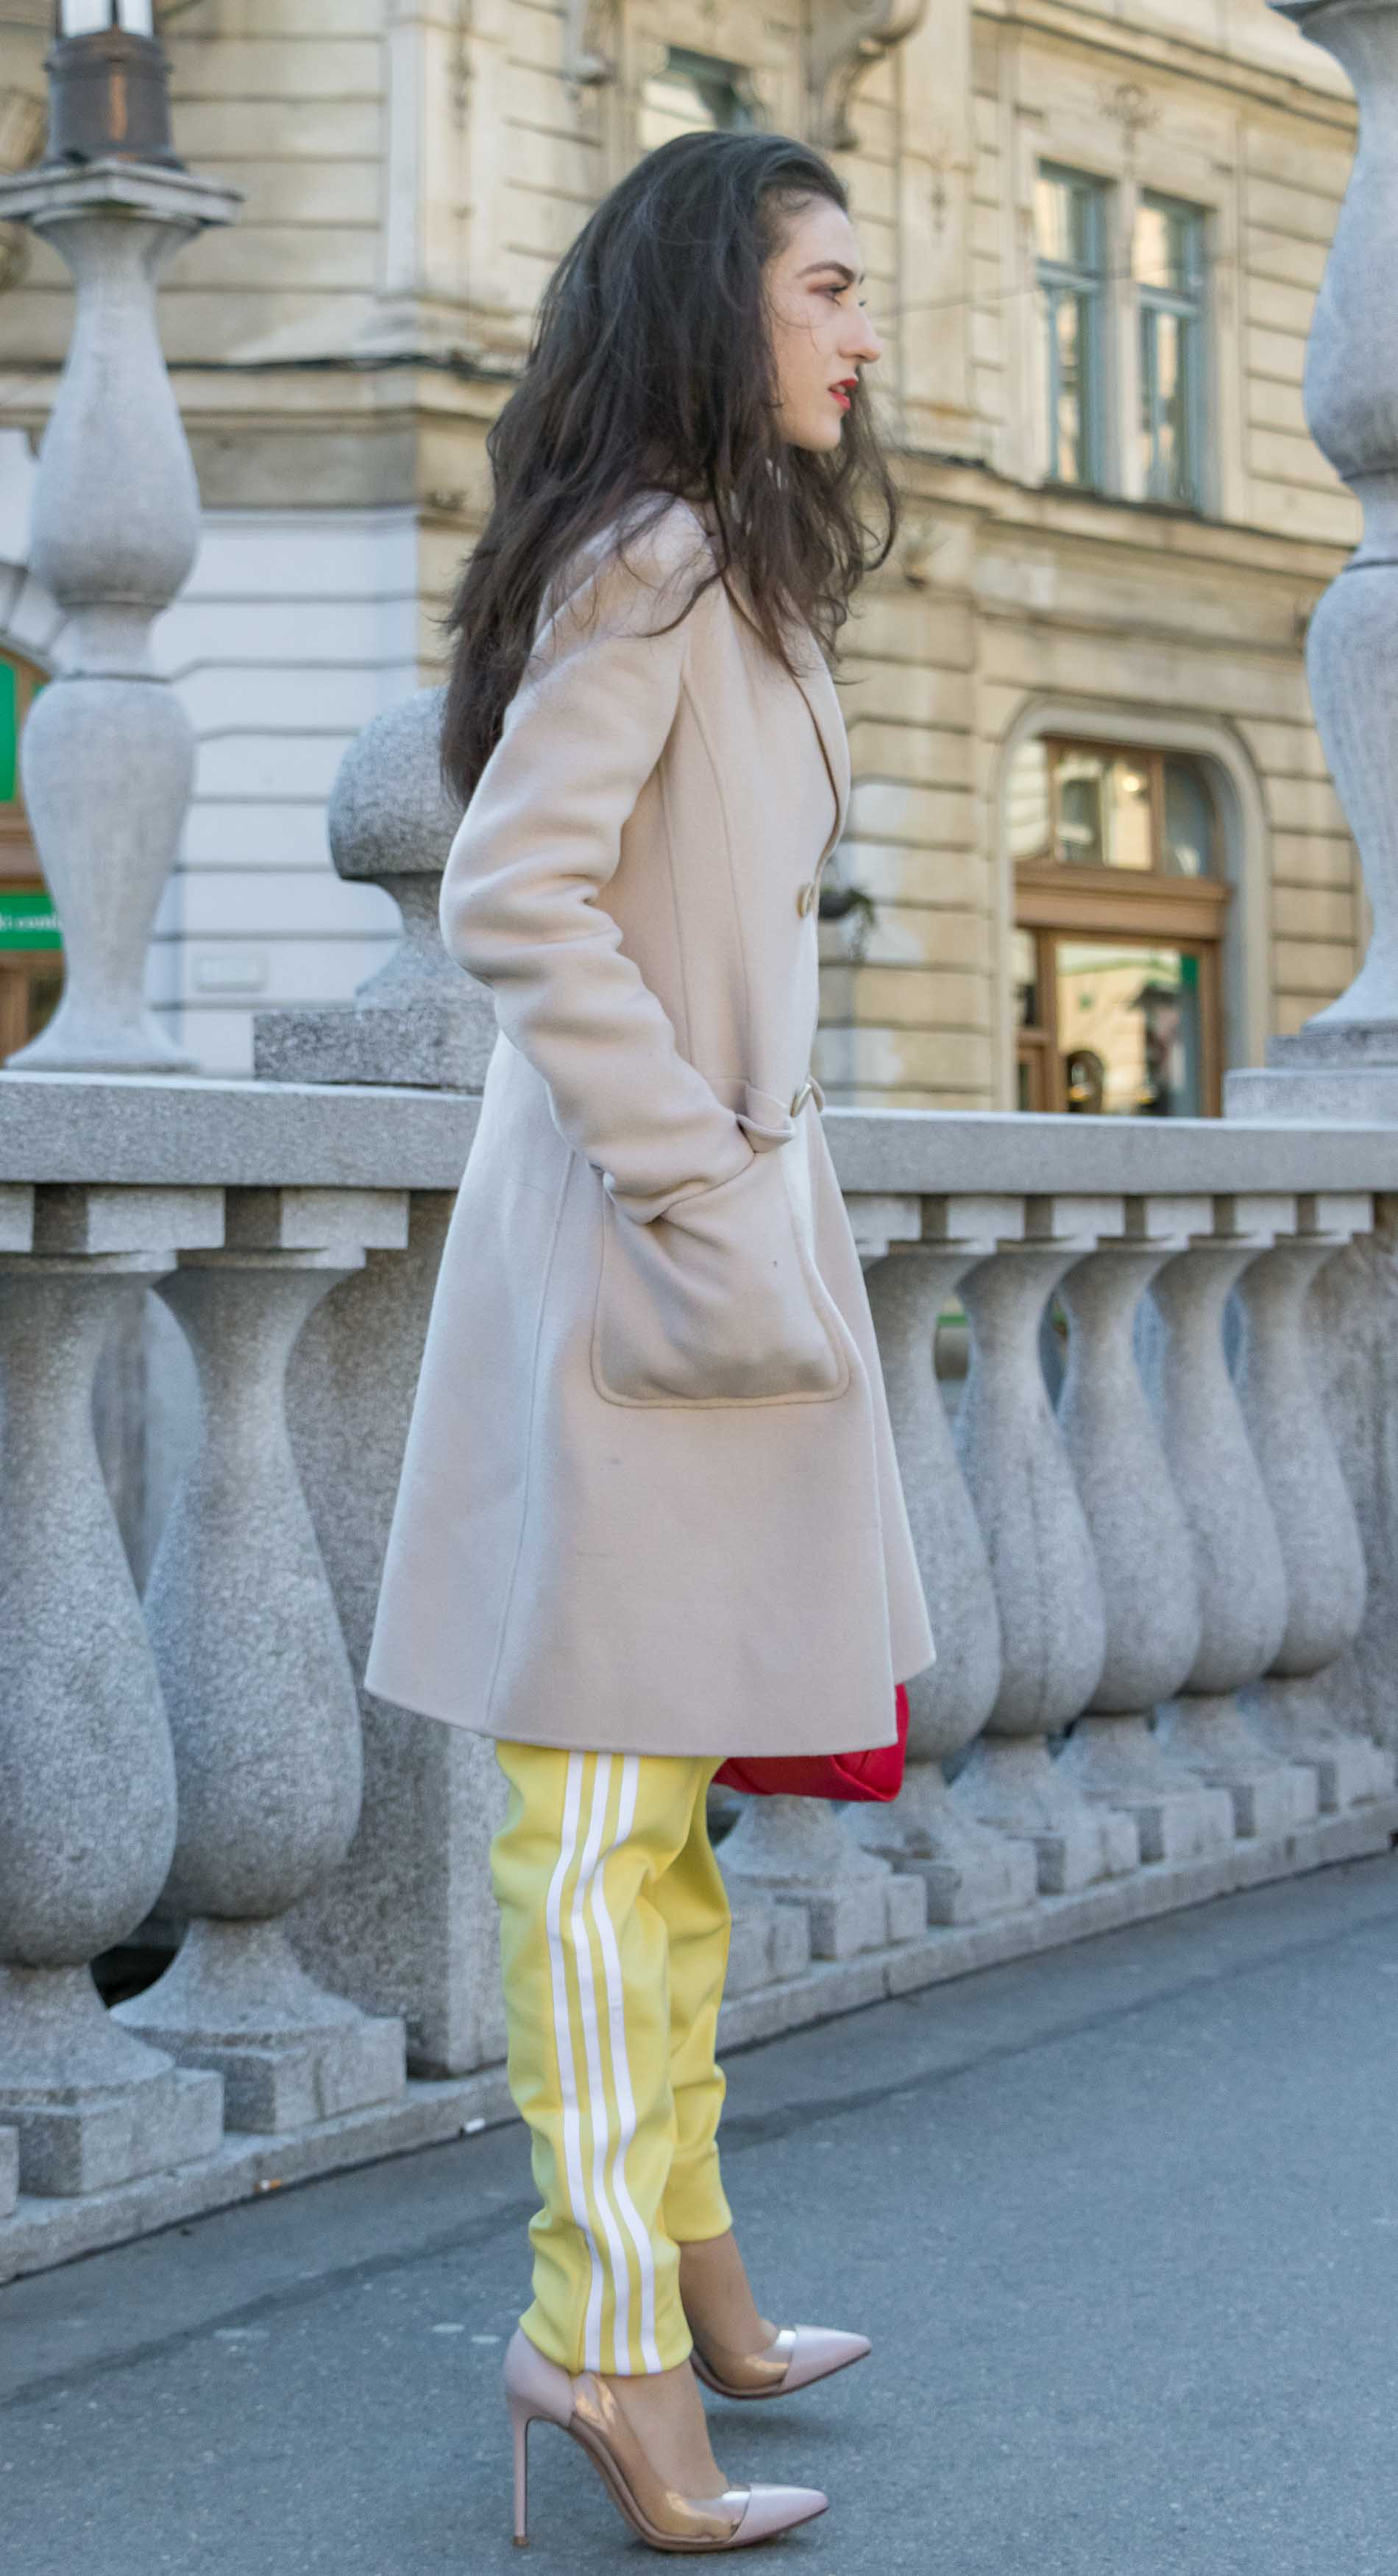 Fashion Blogger Veronika Lipar of Brunette from Wall Street dressed in yellow track pants with white stripes from Adidas, white turtleneck knit sweater, off-white pastel double breasted coat from Weekend Max Mara, blush powder transparent plexi shoes from Gianvito Rossi, pink top handle bag from See by Chloe while standing on the bridge in Ljubljana